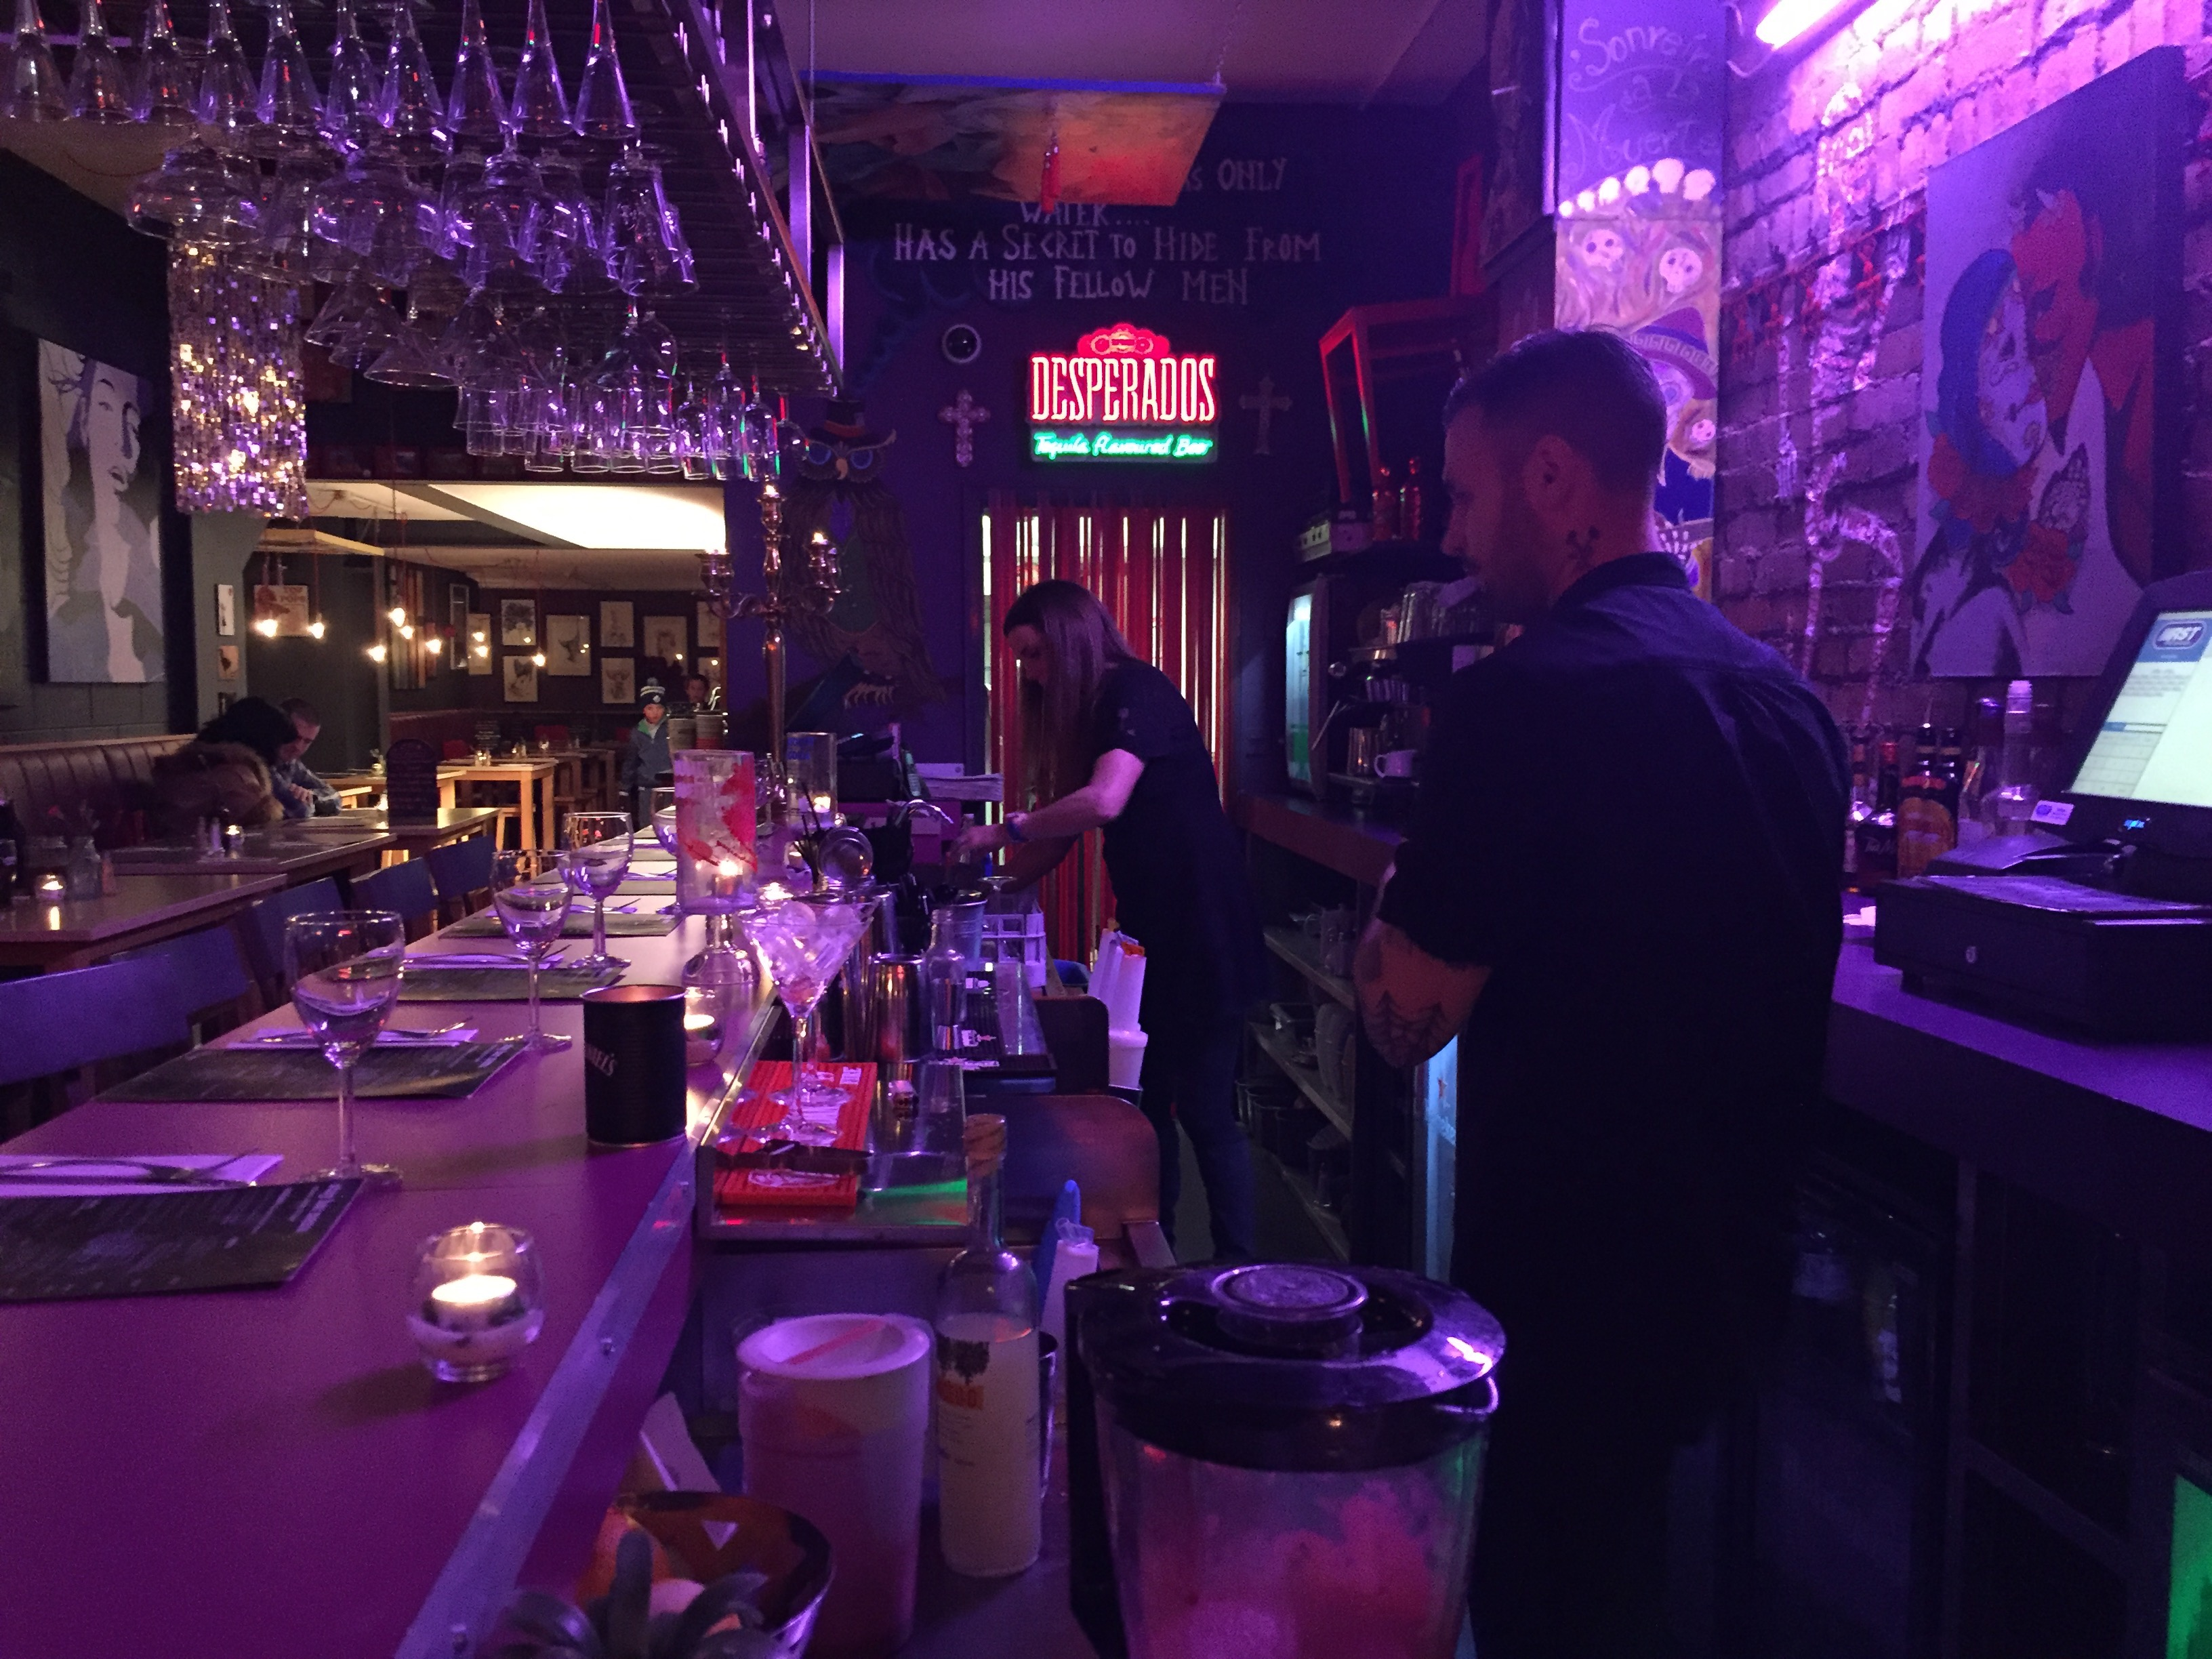 Restaurant review birdcage belfast stay bar menu for Food bar belfast